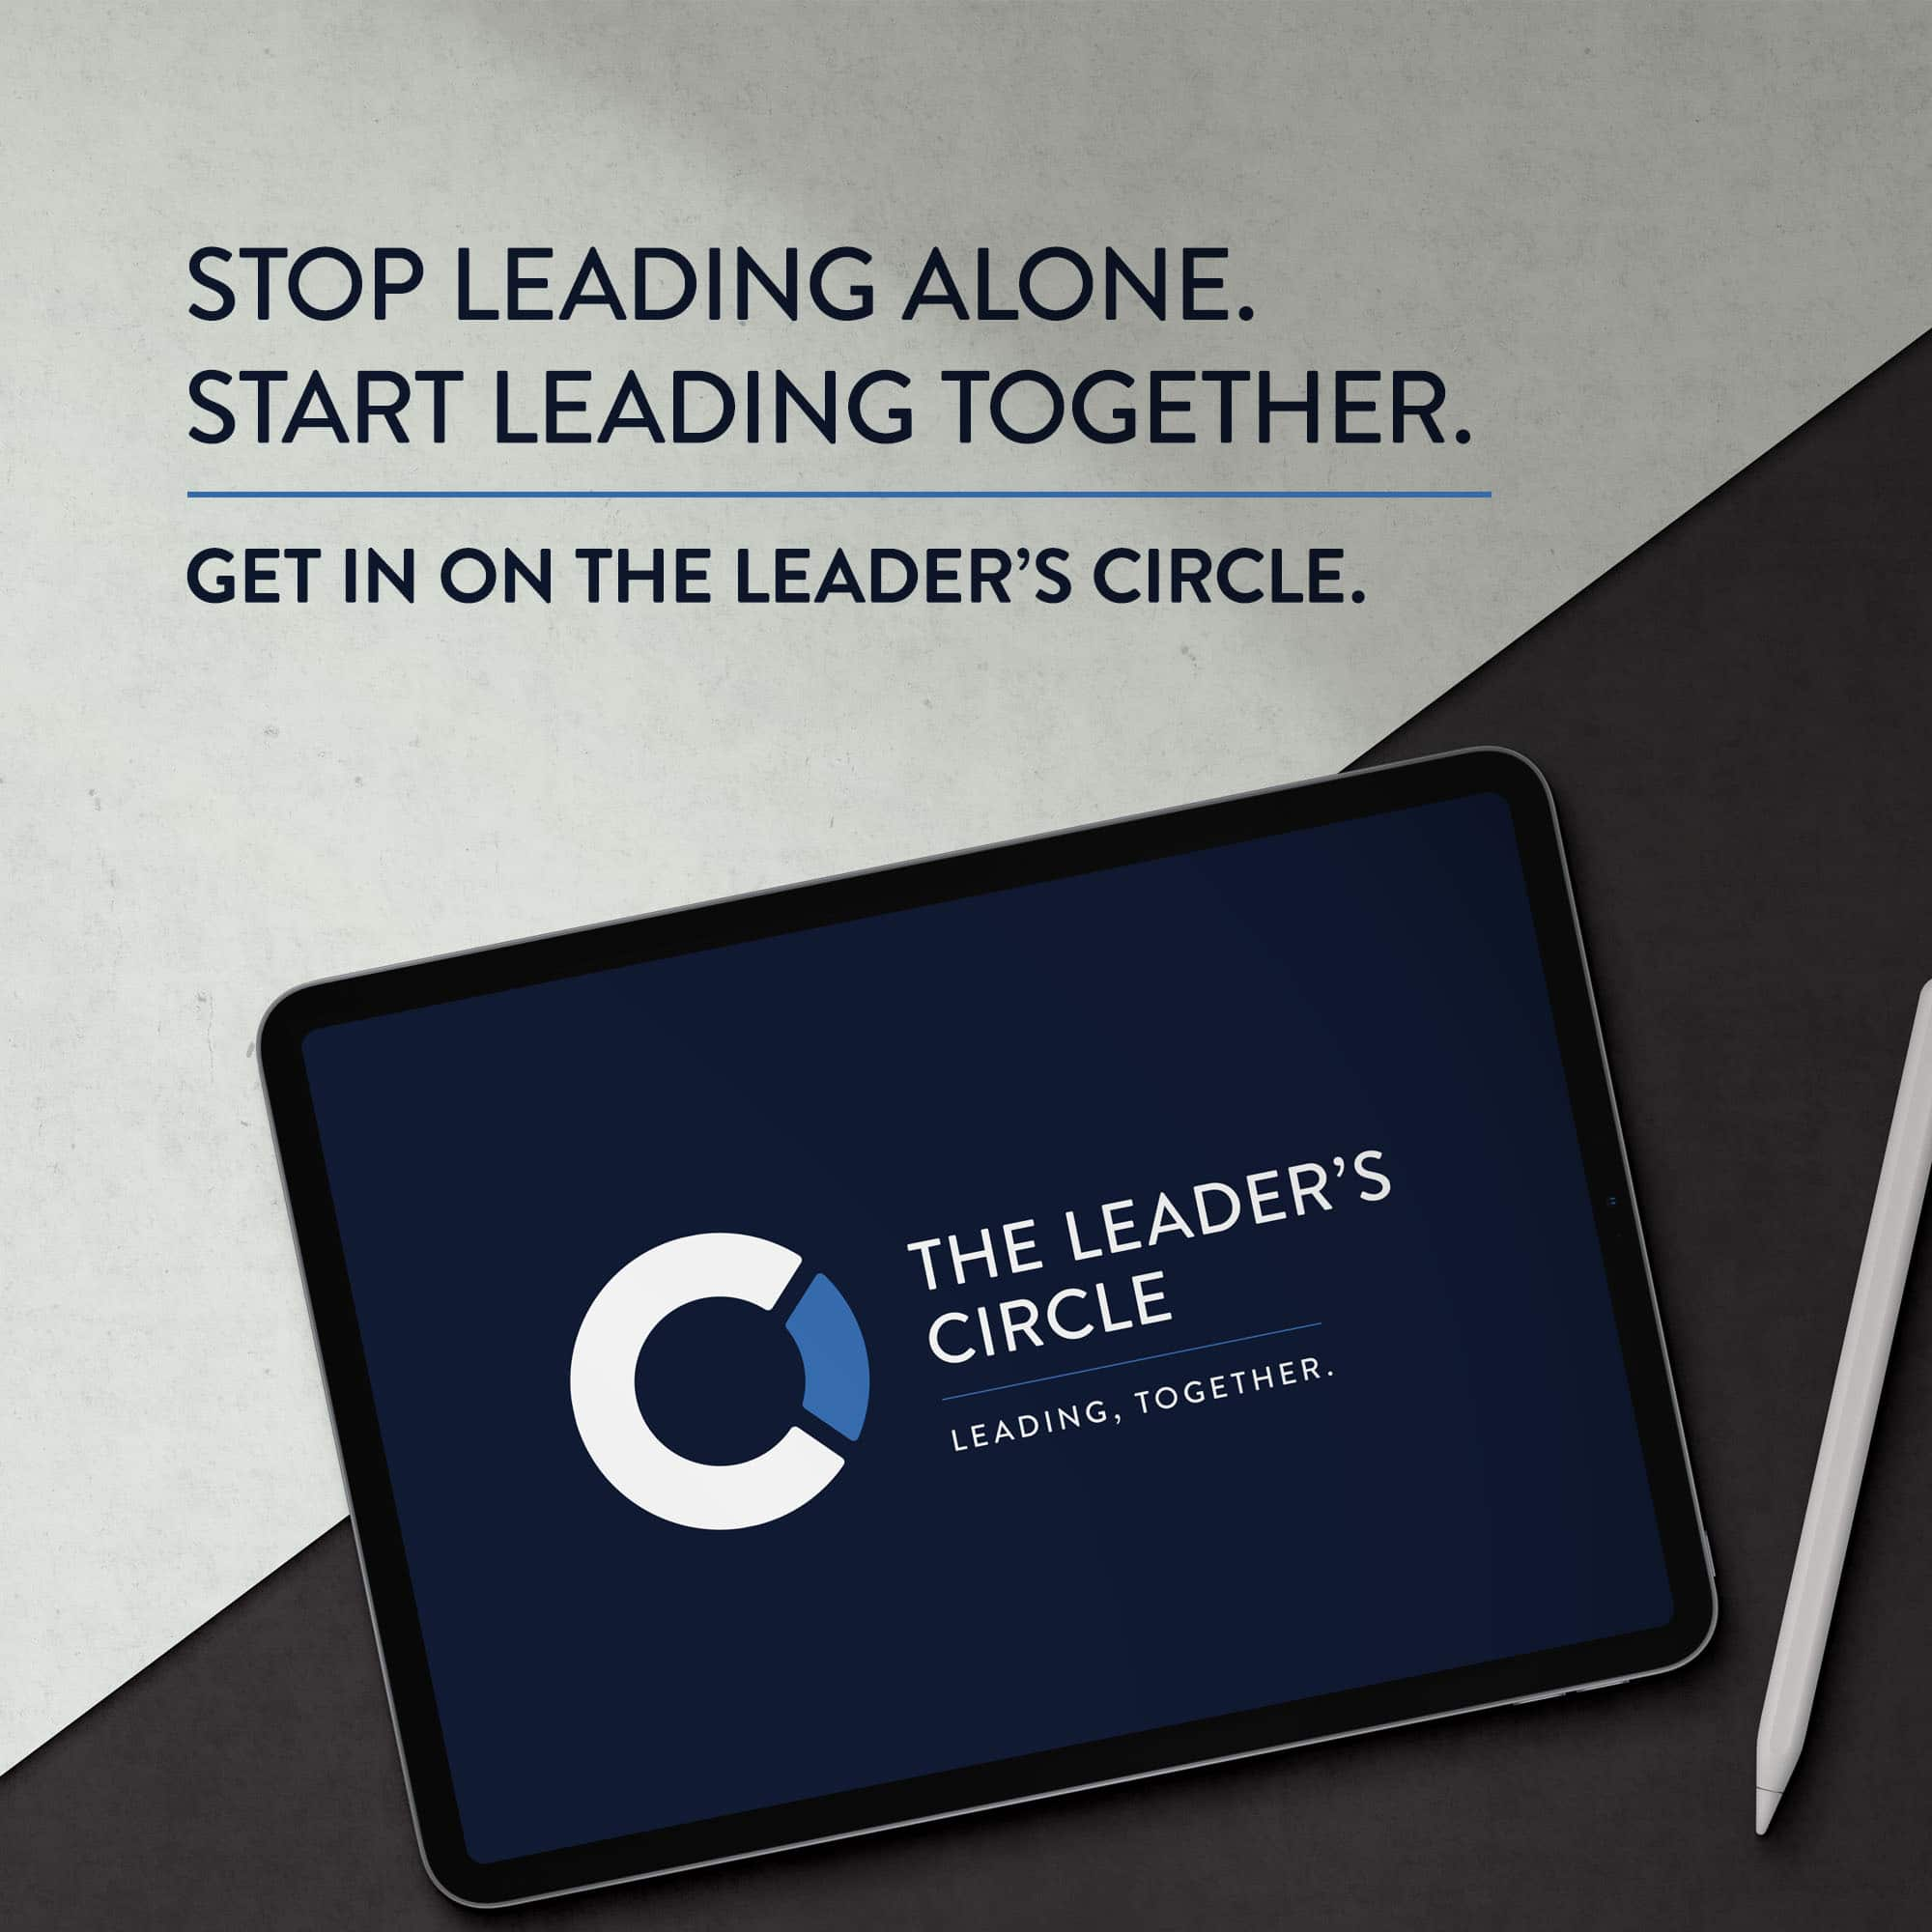 Leaders Circle Application